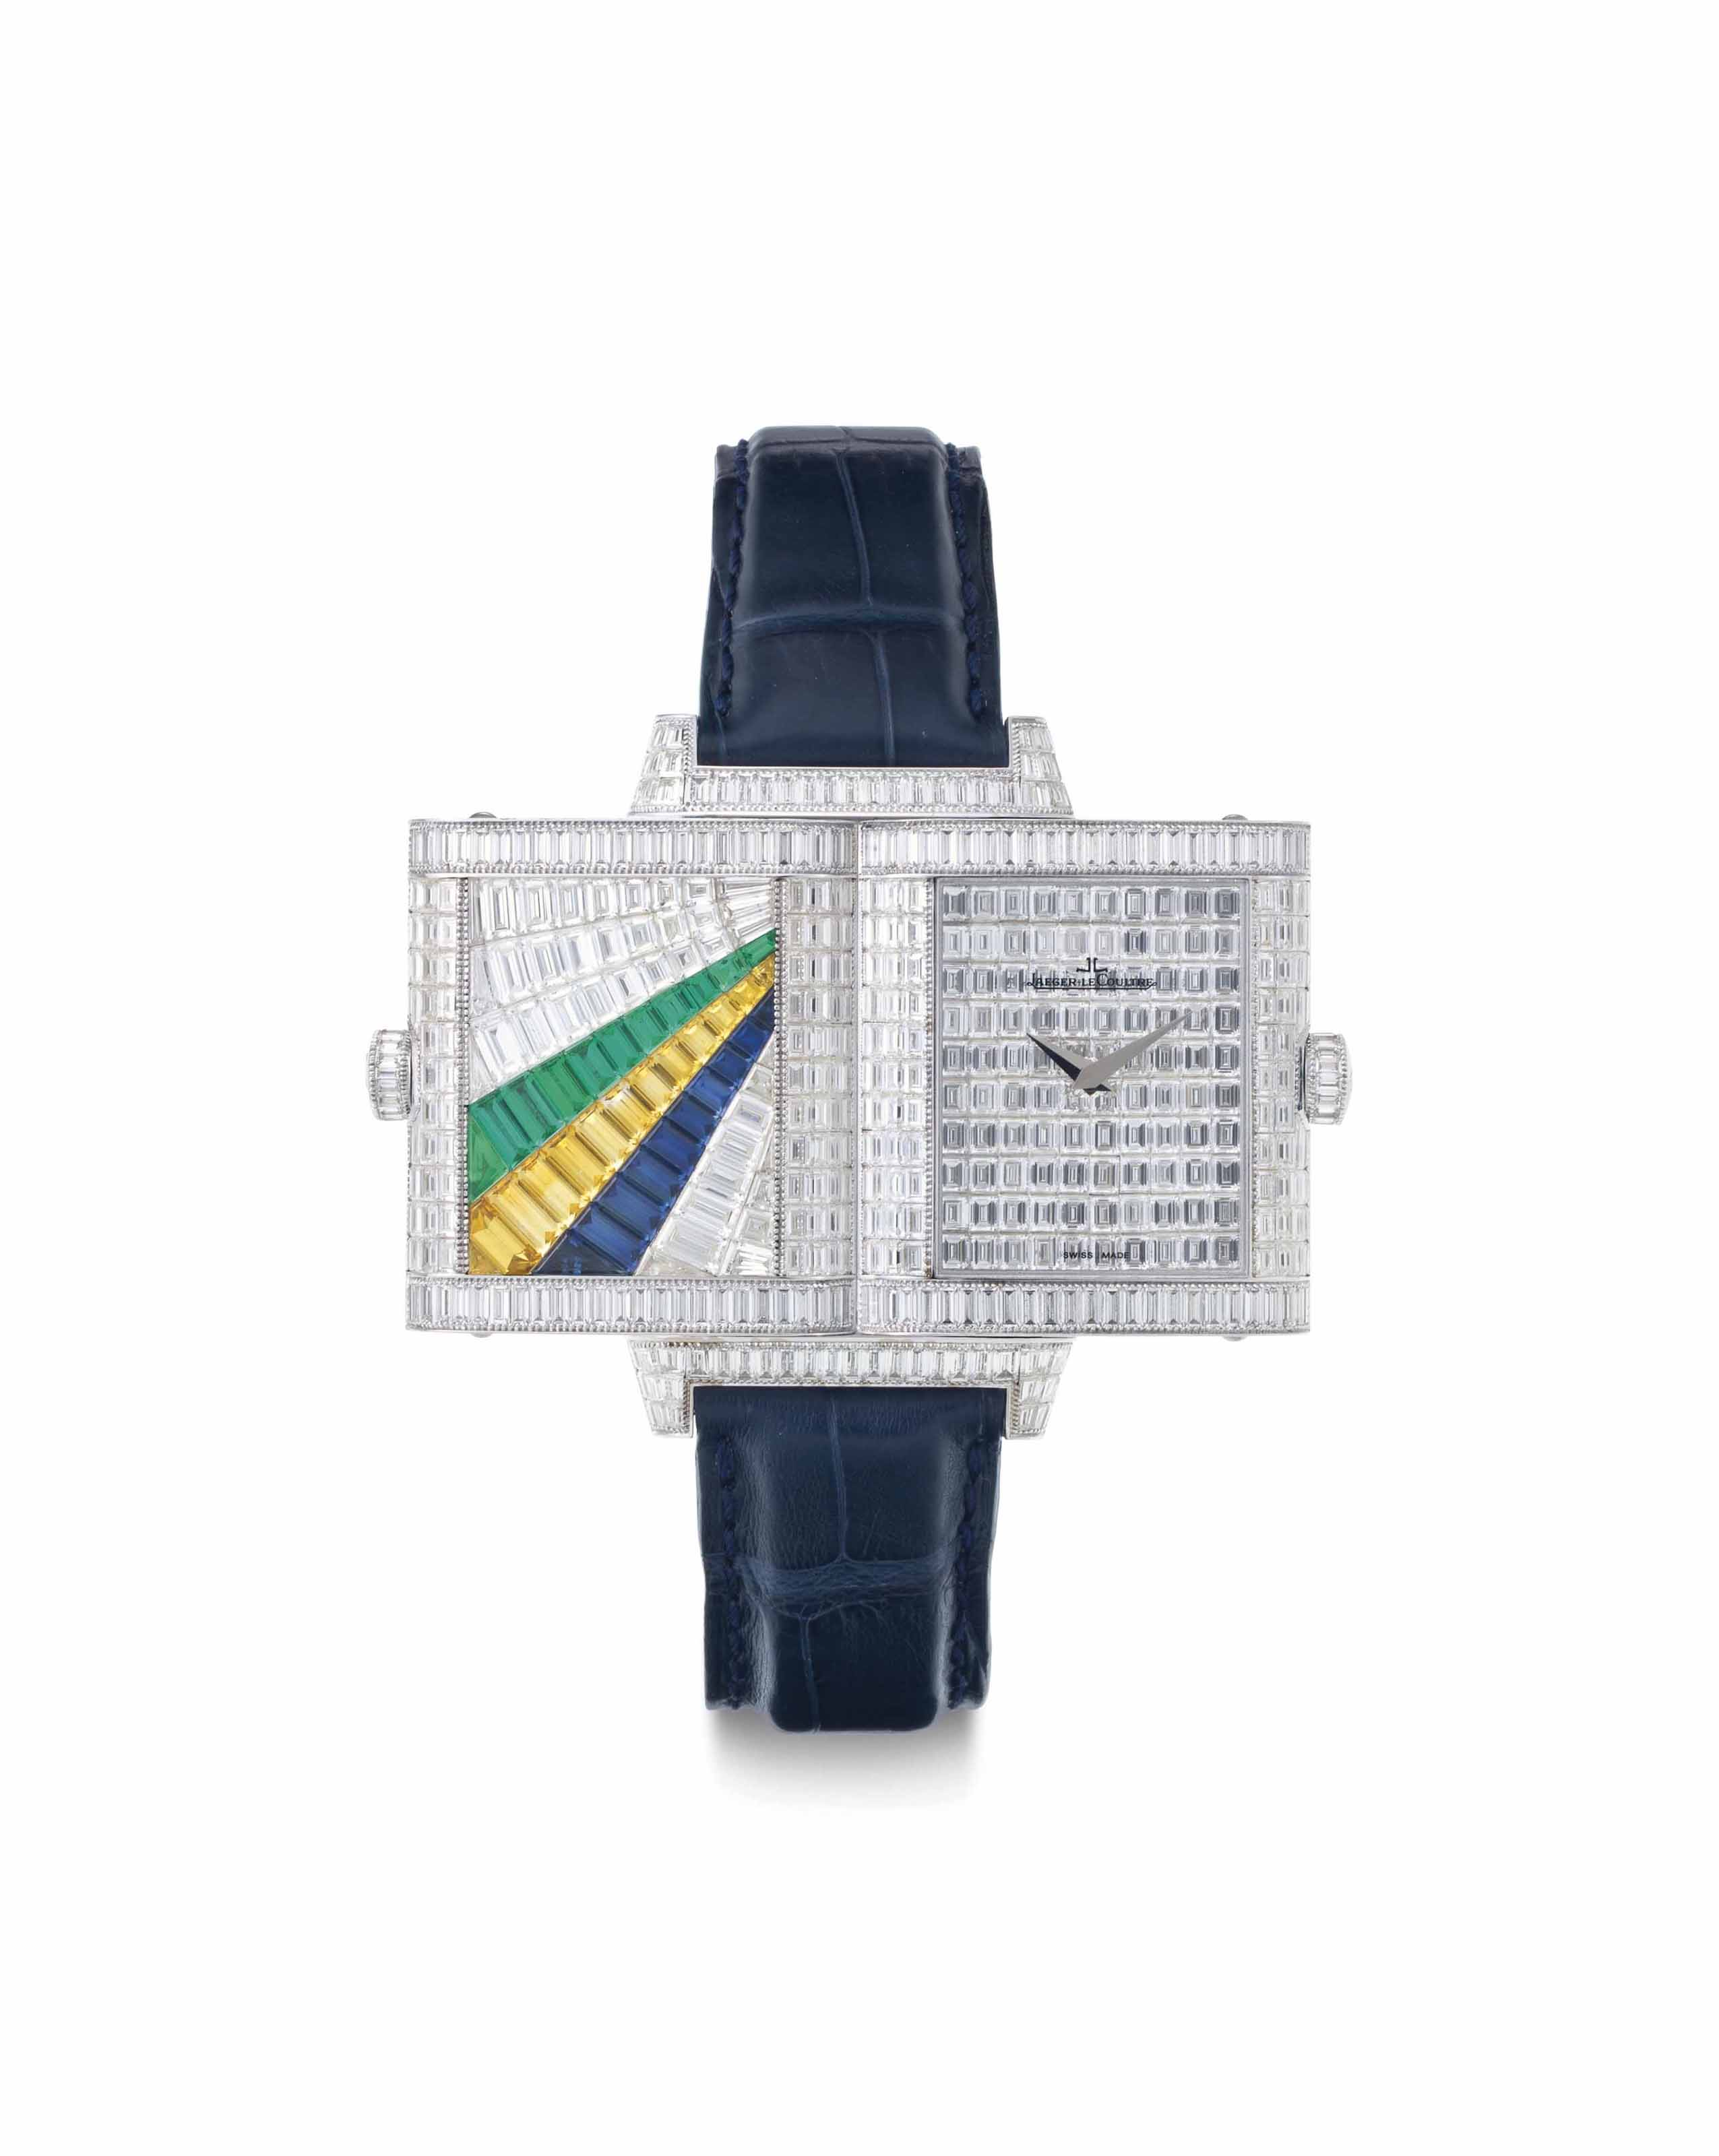 Jaeger-LeCoultre. A Fine and P